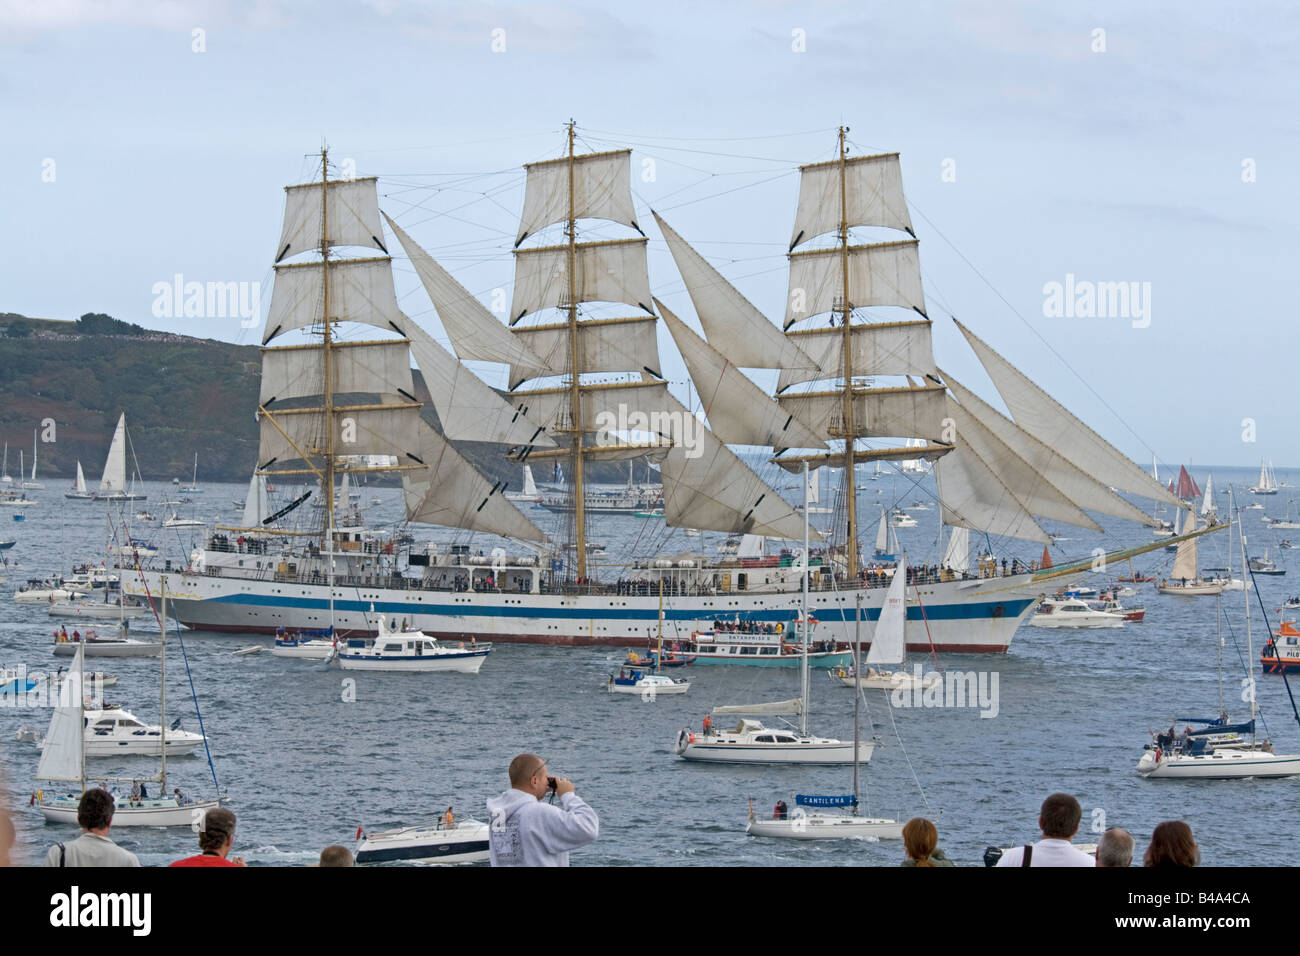 Mir square rigged training ship Funchal 500 Tall Ships Regatta Pendennis Point Falmouth Cornwall UK Stock Photo